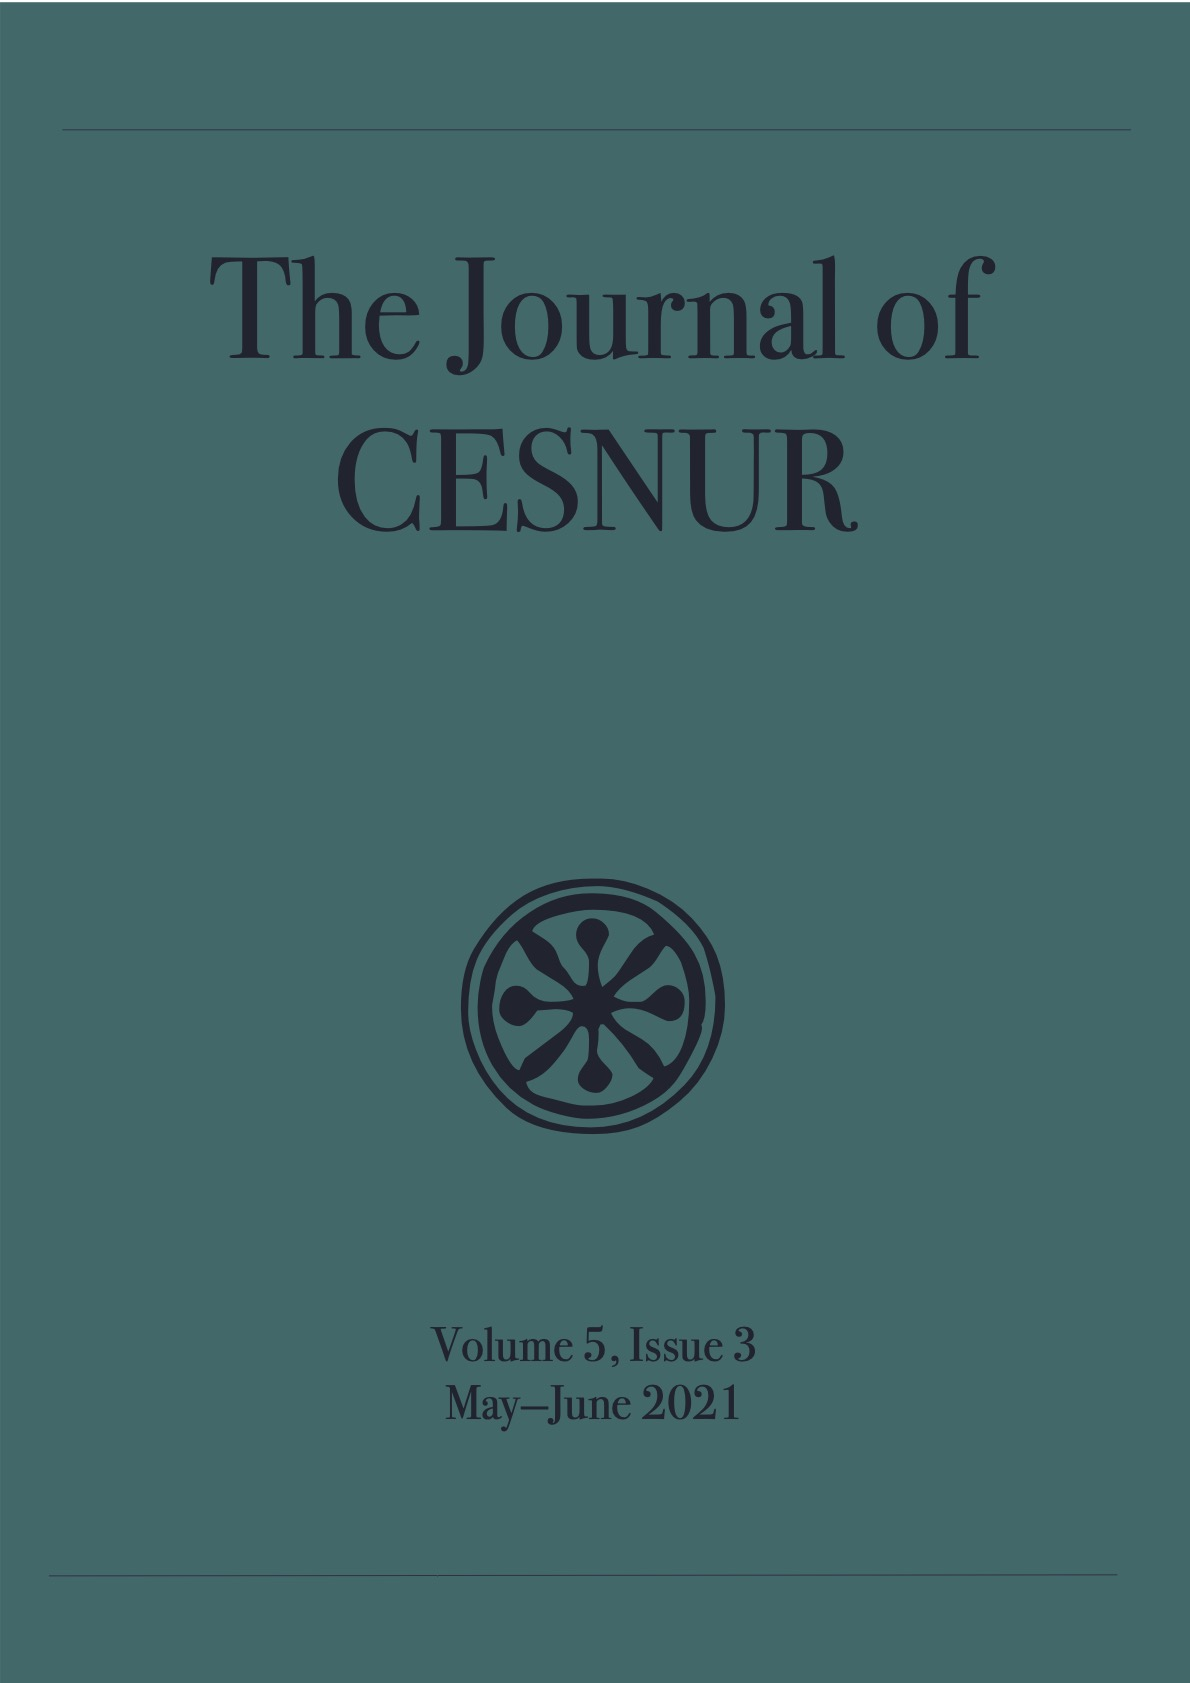 The Journal of CESNUR 5_3 cover